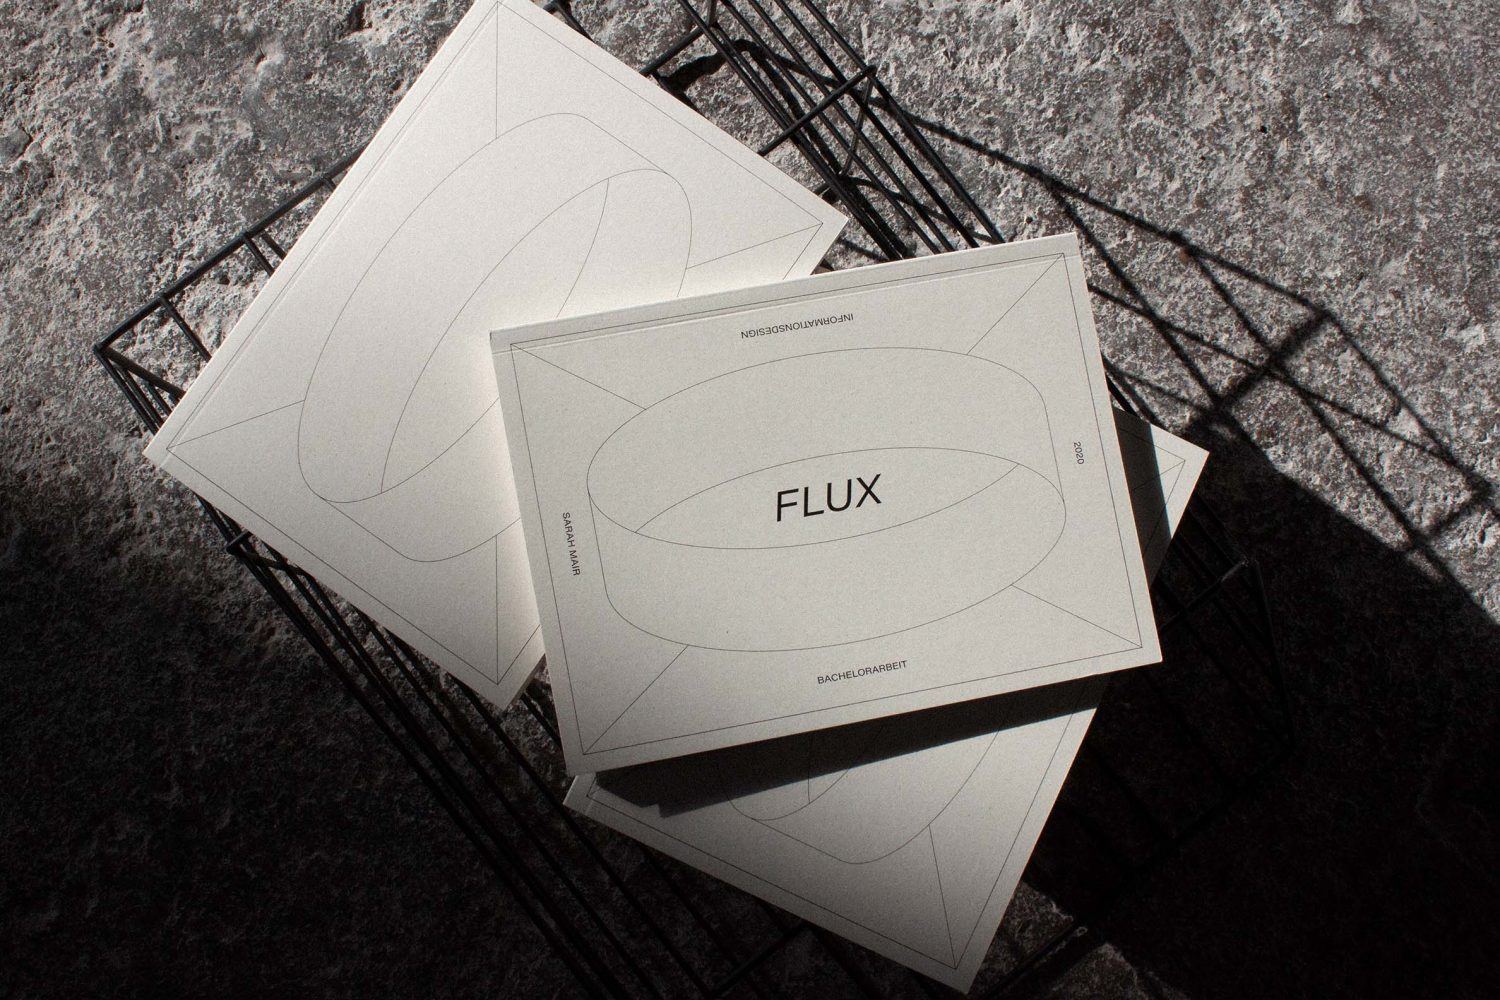 FLUX Call for Creatives